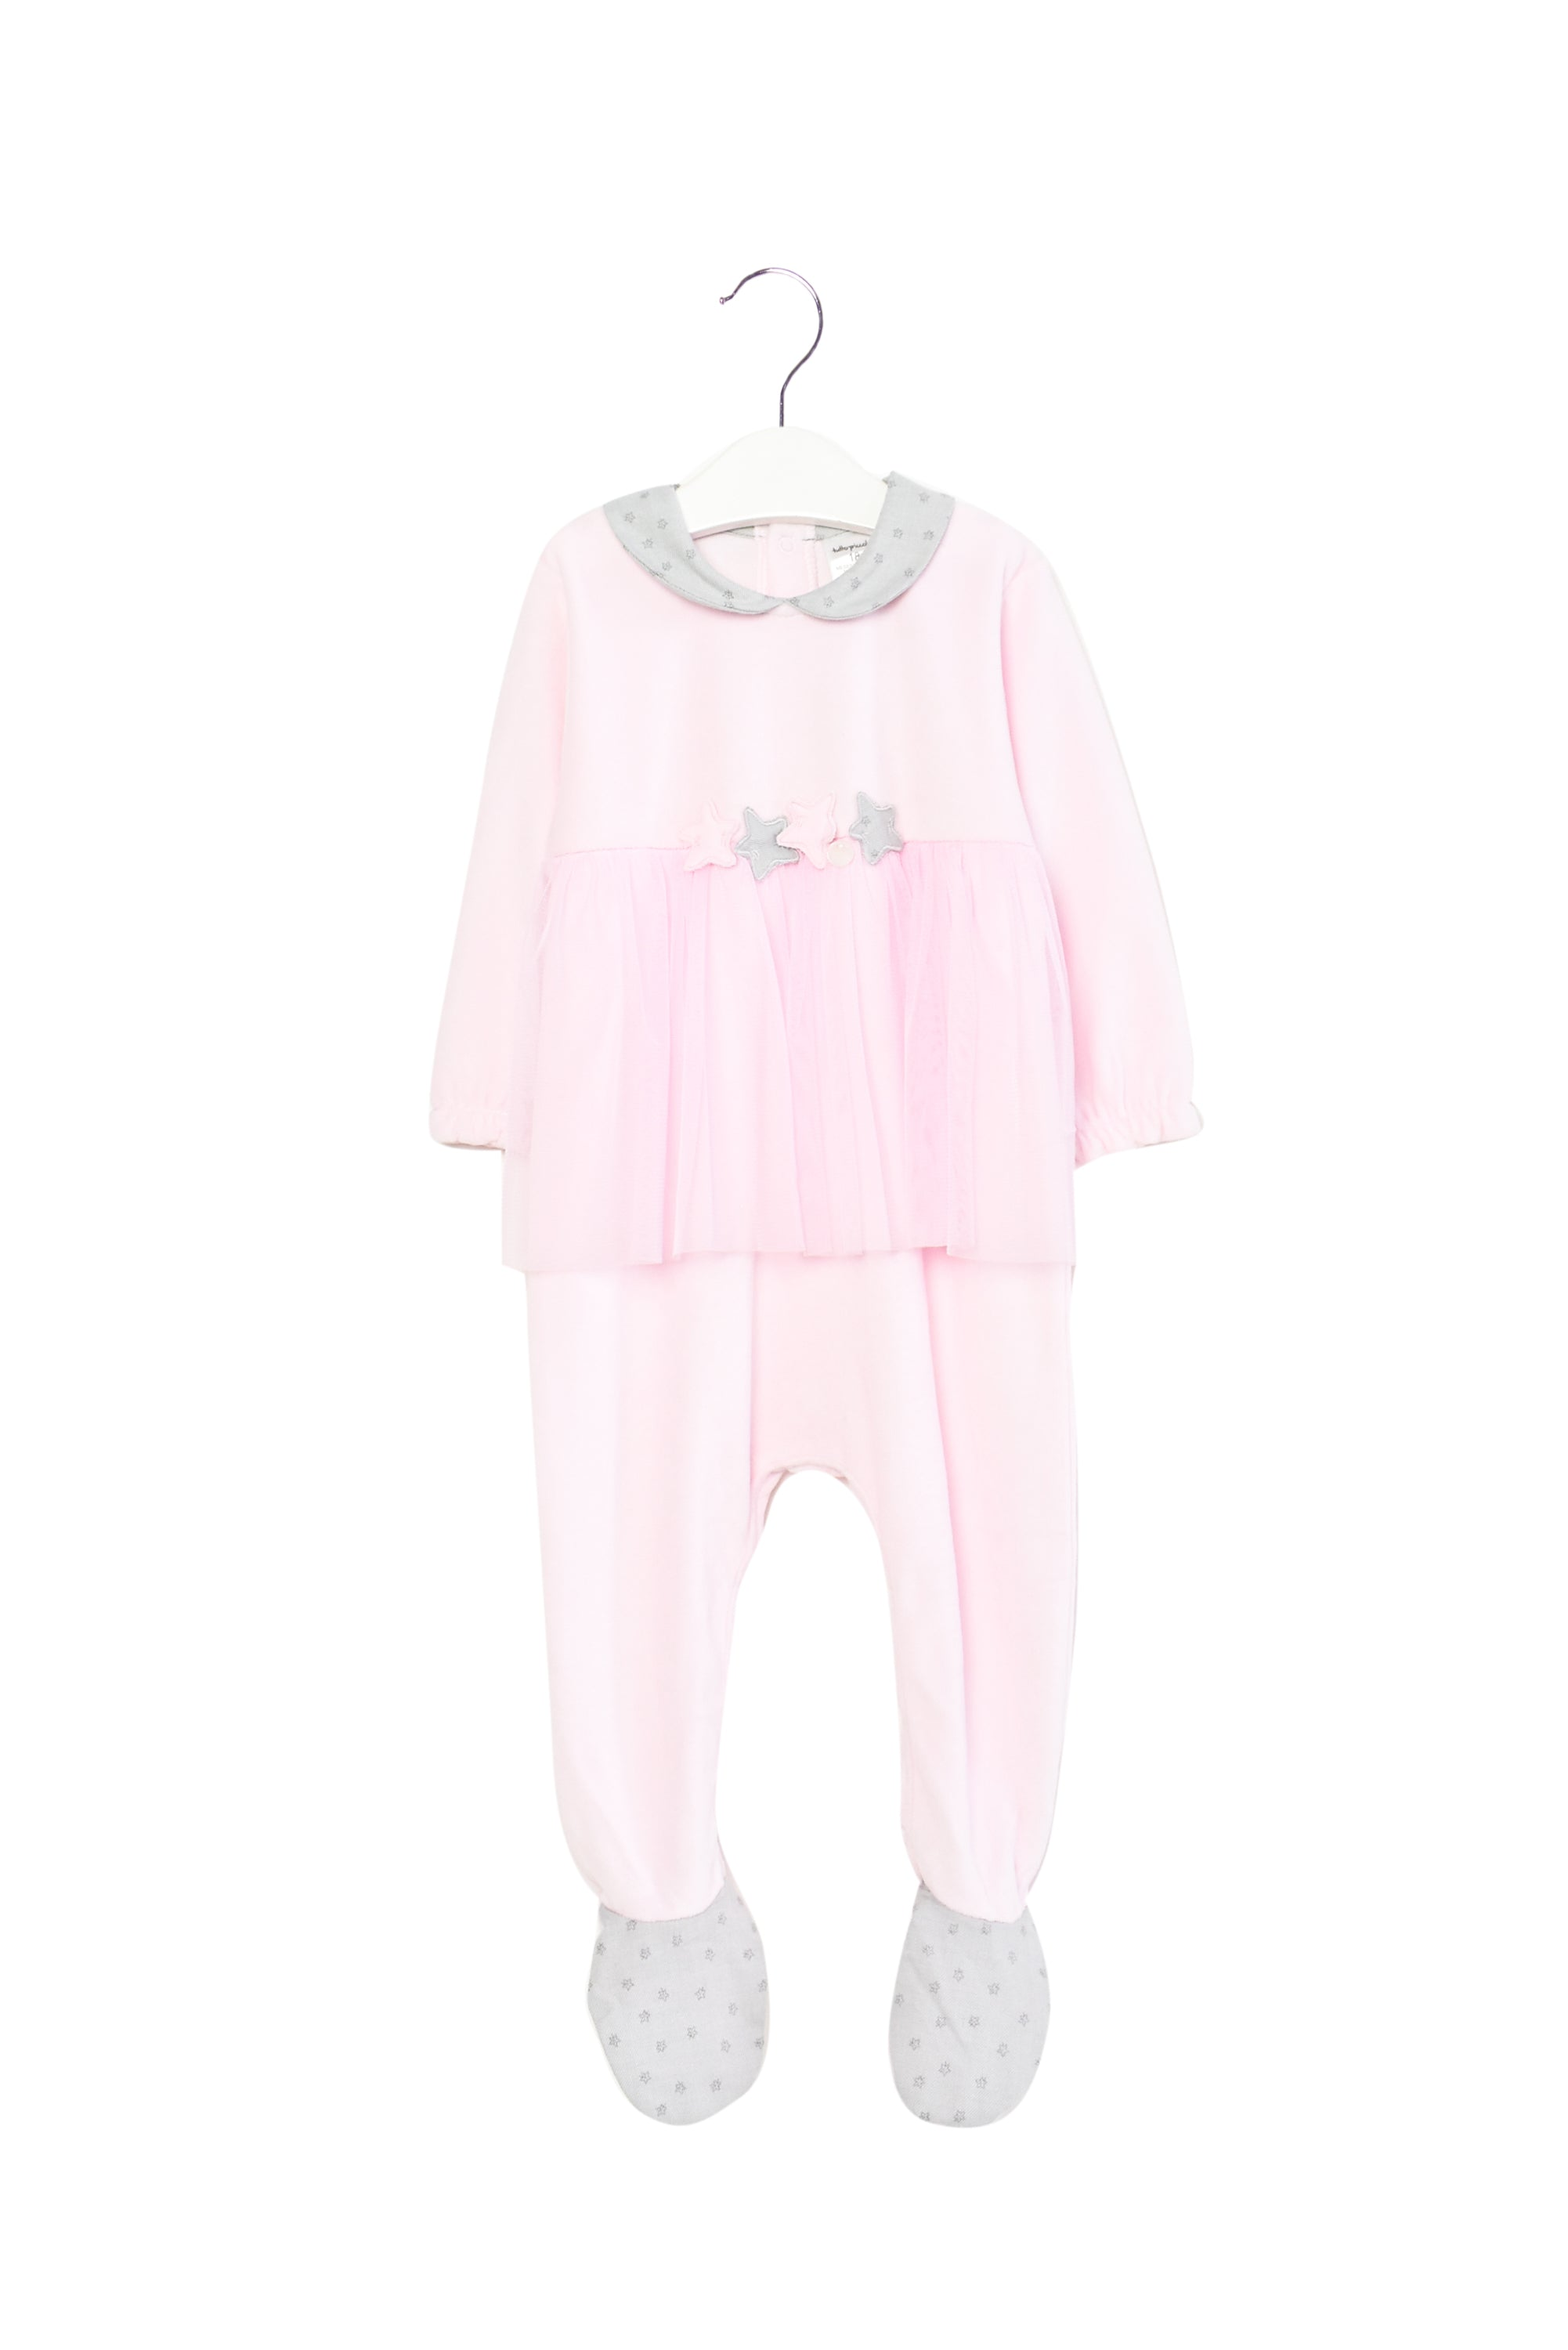 10011734 Tutto Piccolo Baby ~ Jumpsuit 18M at Retykle